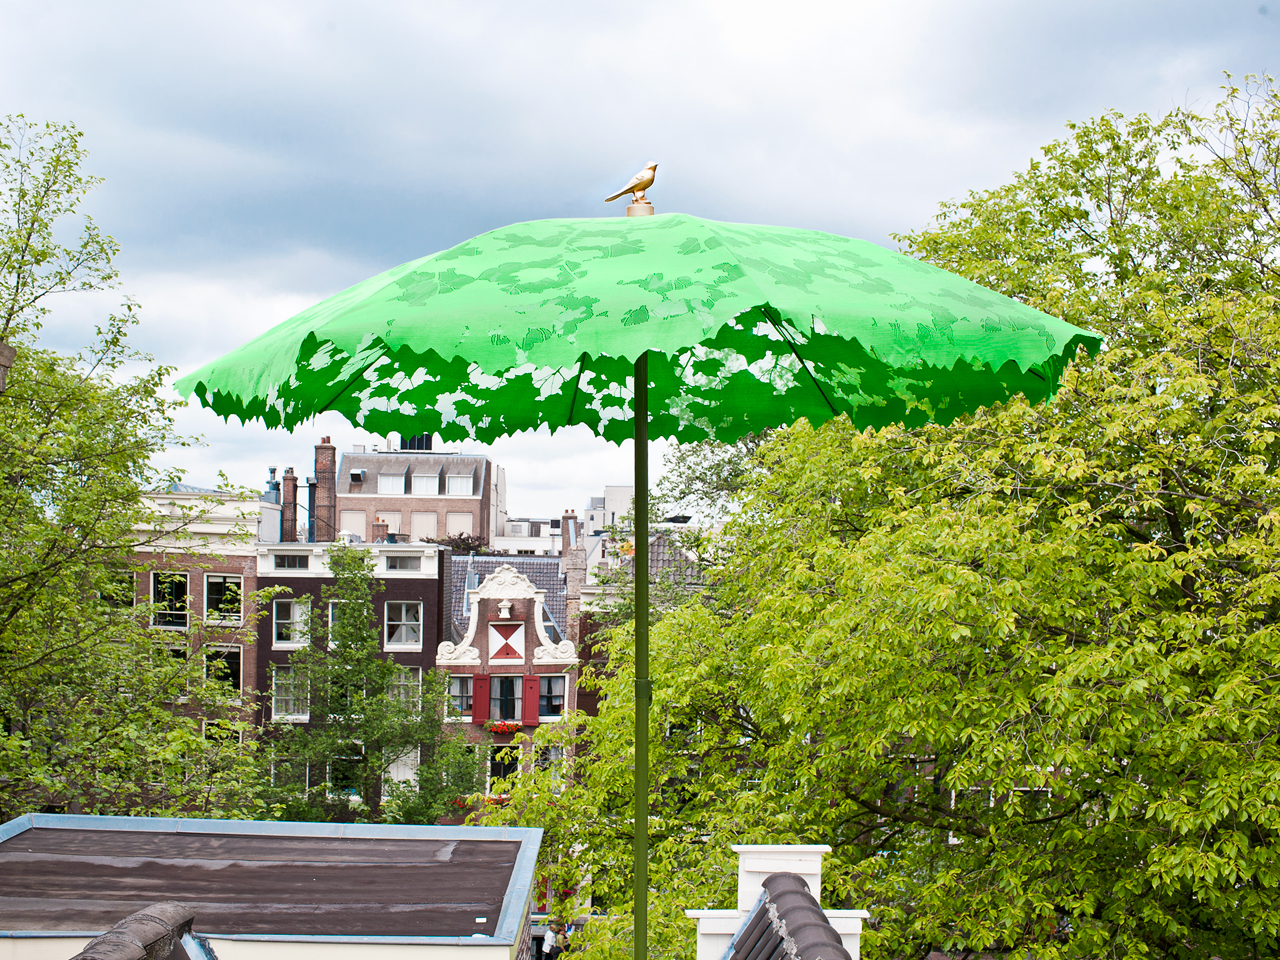 12 Modern Umbrellas We'd Be Happy to Sit Under